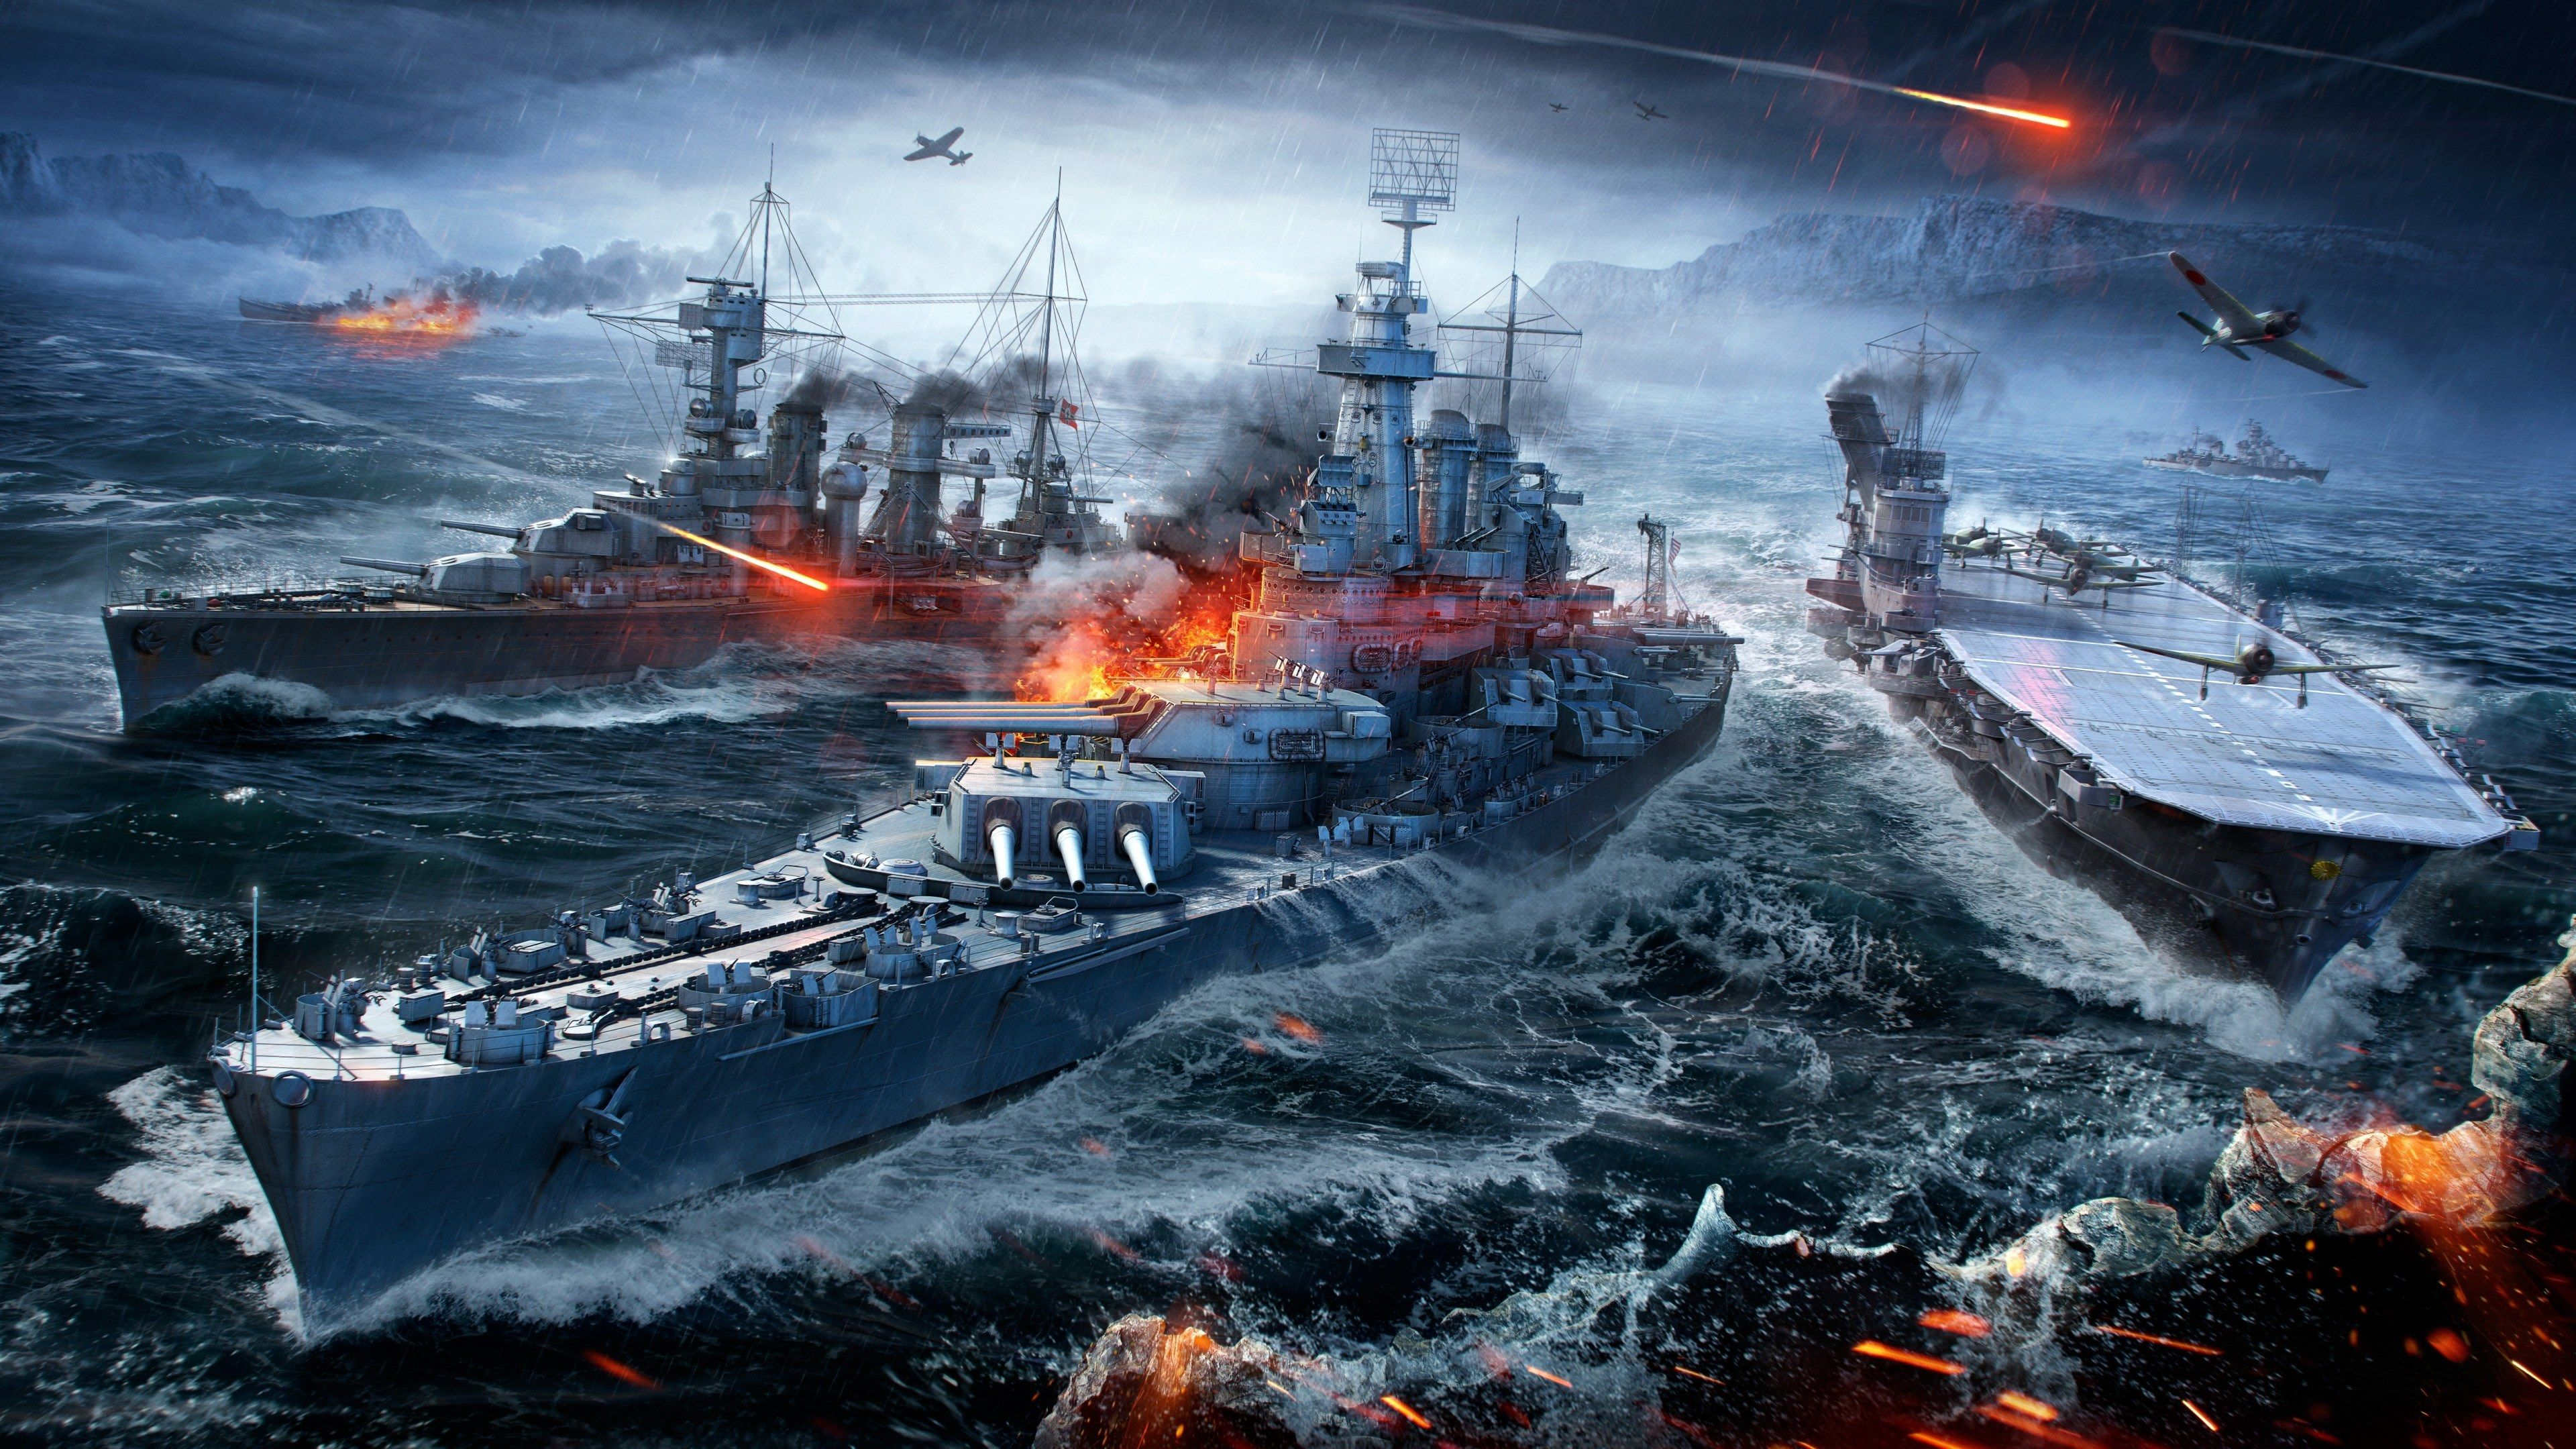 3840x2160 World Of Warships 4k Hi Def Wallpapers In 2020 World Of Warships Wallpaper Warship Battleship